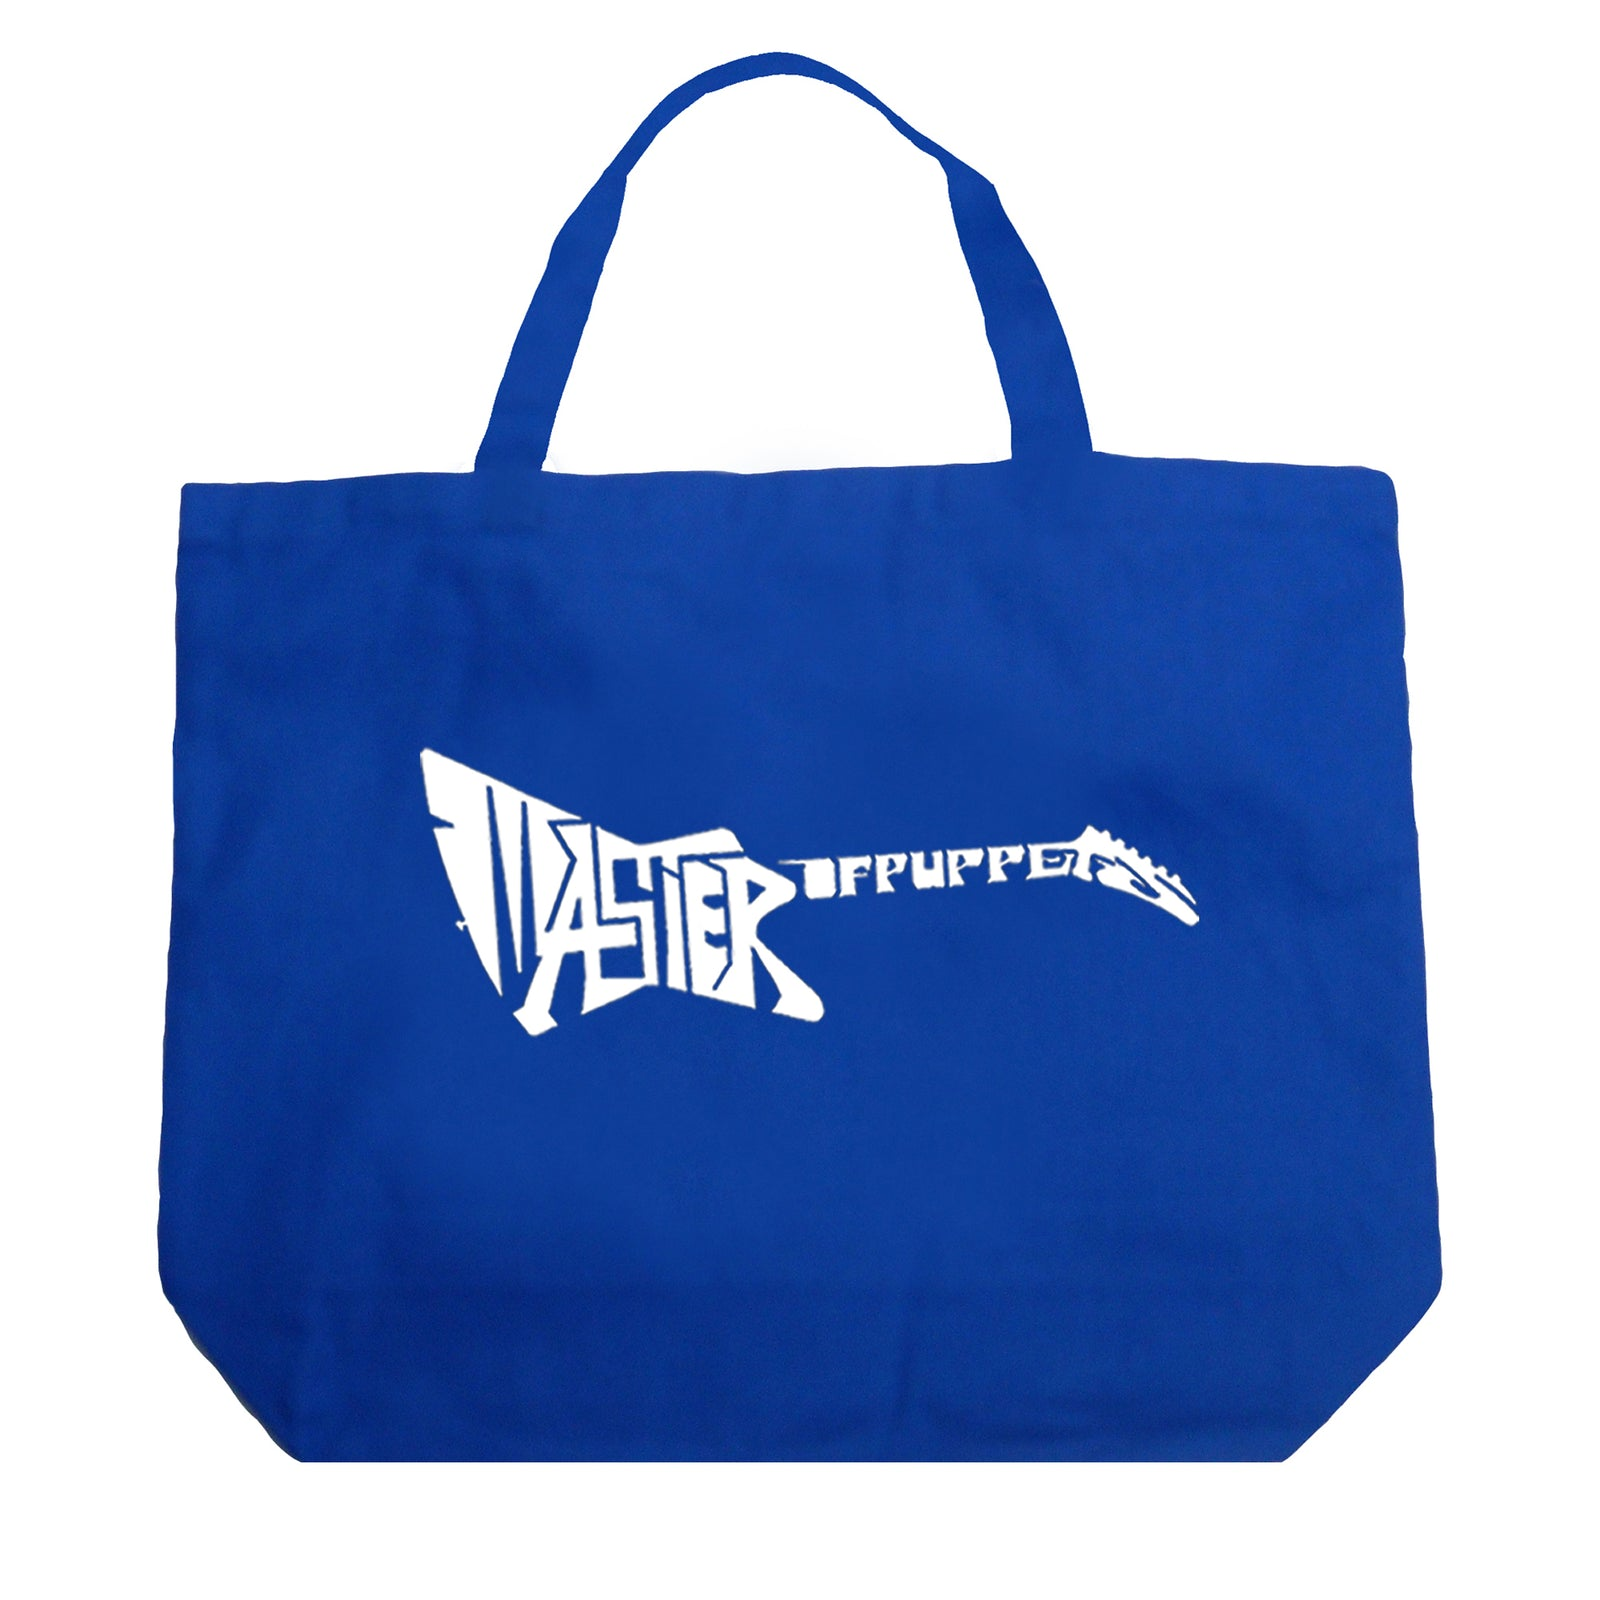 Large Tote Bag - Master of Puppets